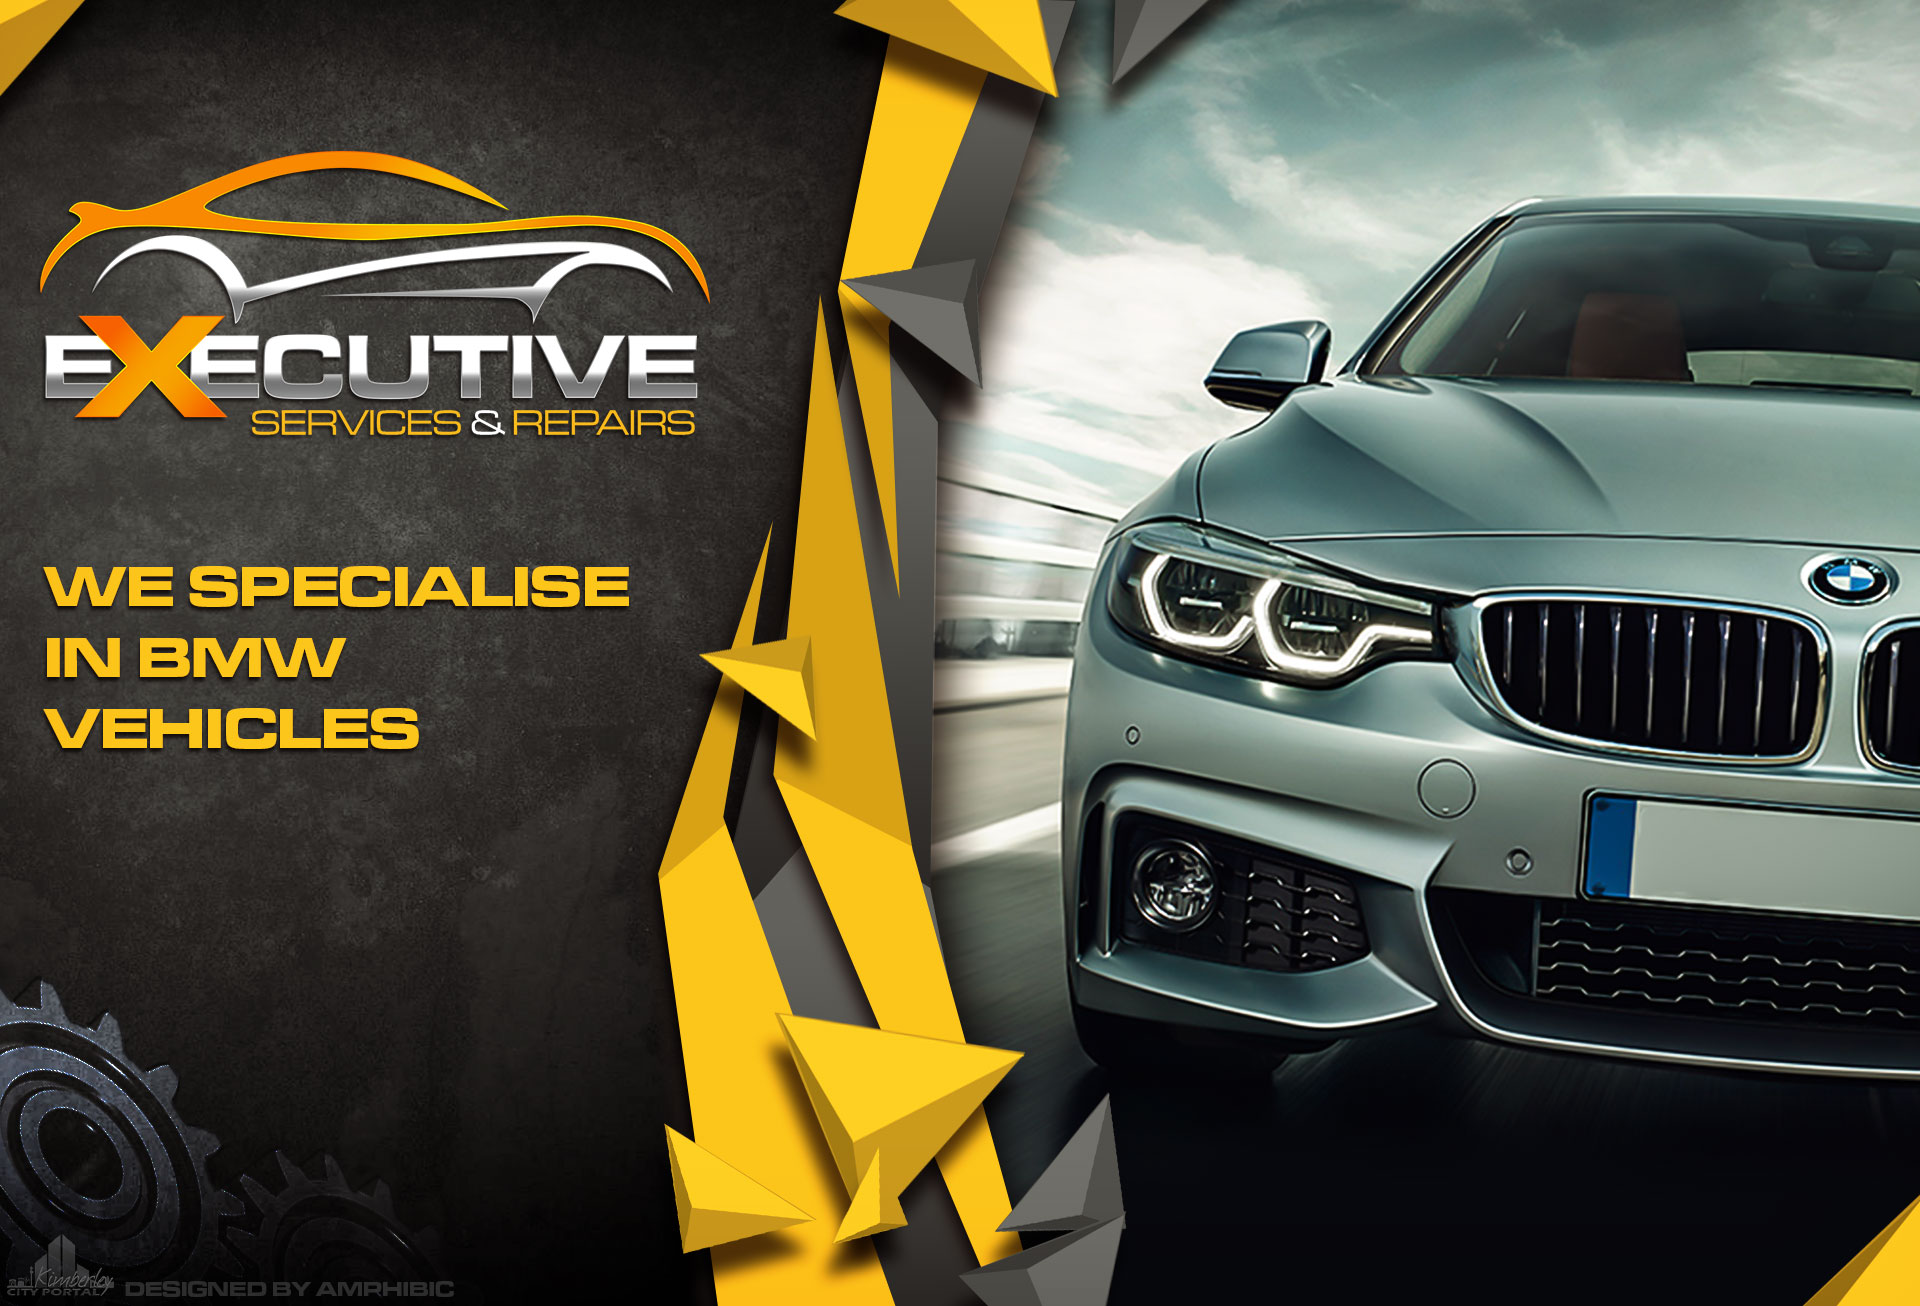 hight resolution of we specialise in bmw vehicles executive car vehicle auto repair services kimberley